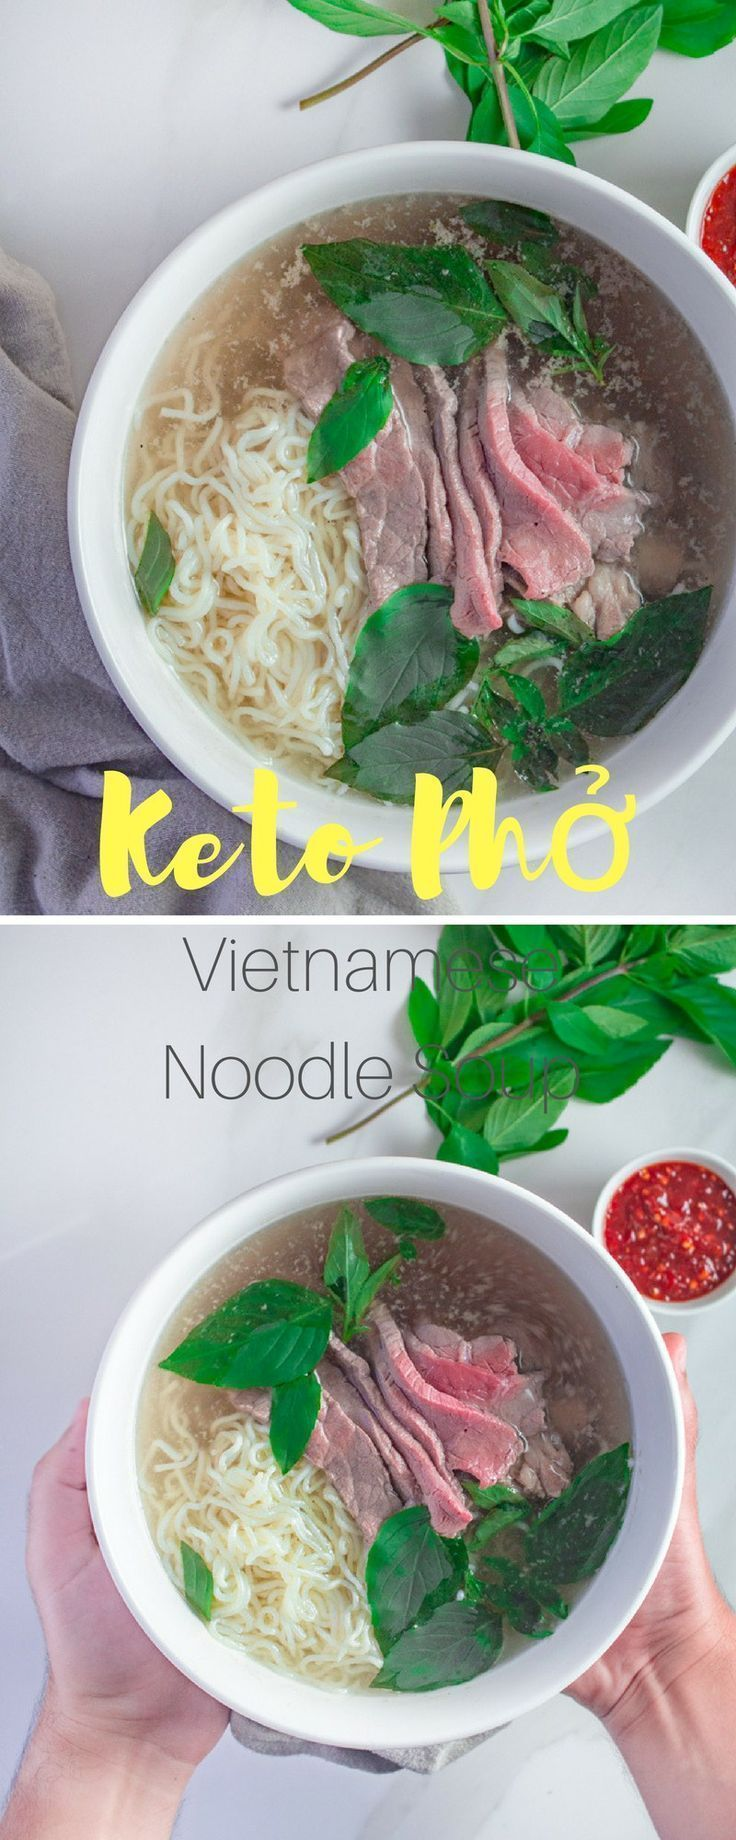 Keto Pho | Vietnamese-Style Noodle Soup | This easy keto noodle soup is made using a rich beef broth and is served with thinly sliced flank steak. | #keto #soup #easy #recipe #dinner #pho #recipesforflanksteak